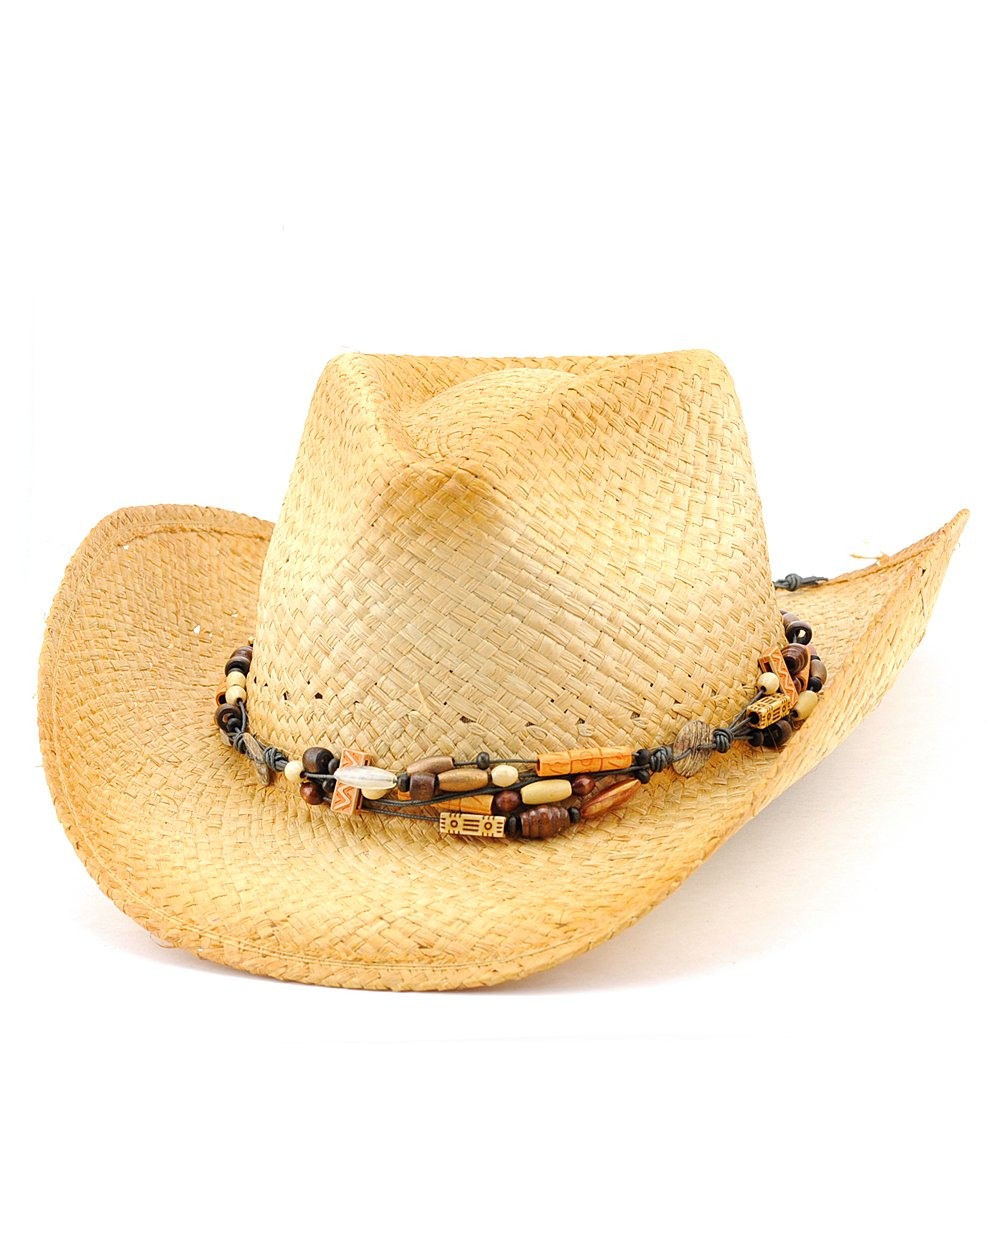 NYFASHION101 2-Toned Cowboy/Cowgirl Hat with Tribal Style Beaded Hat Band, S/M